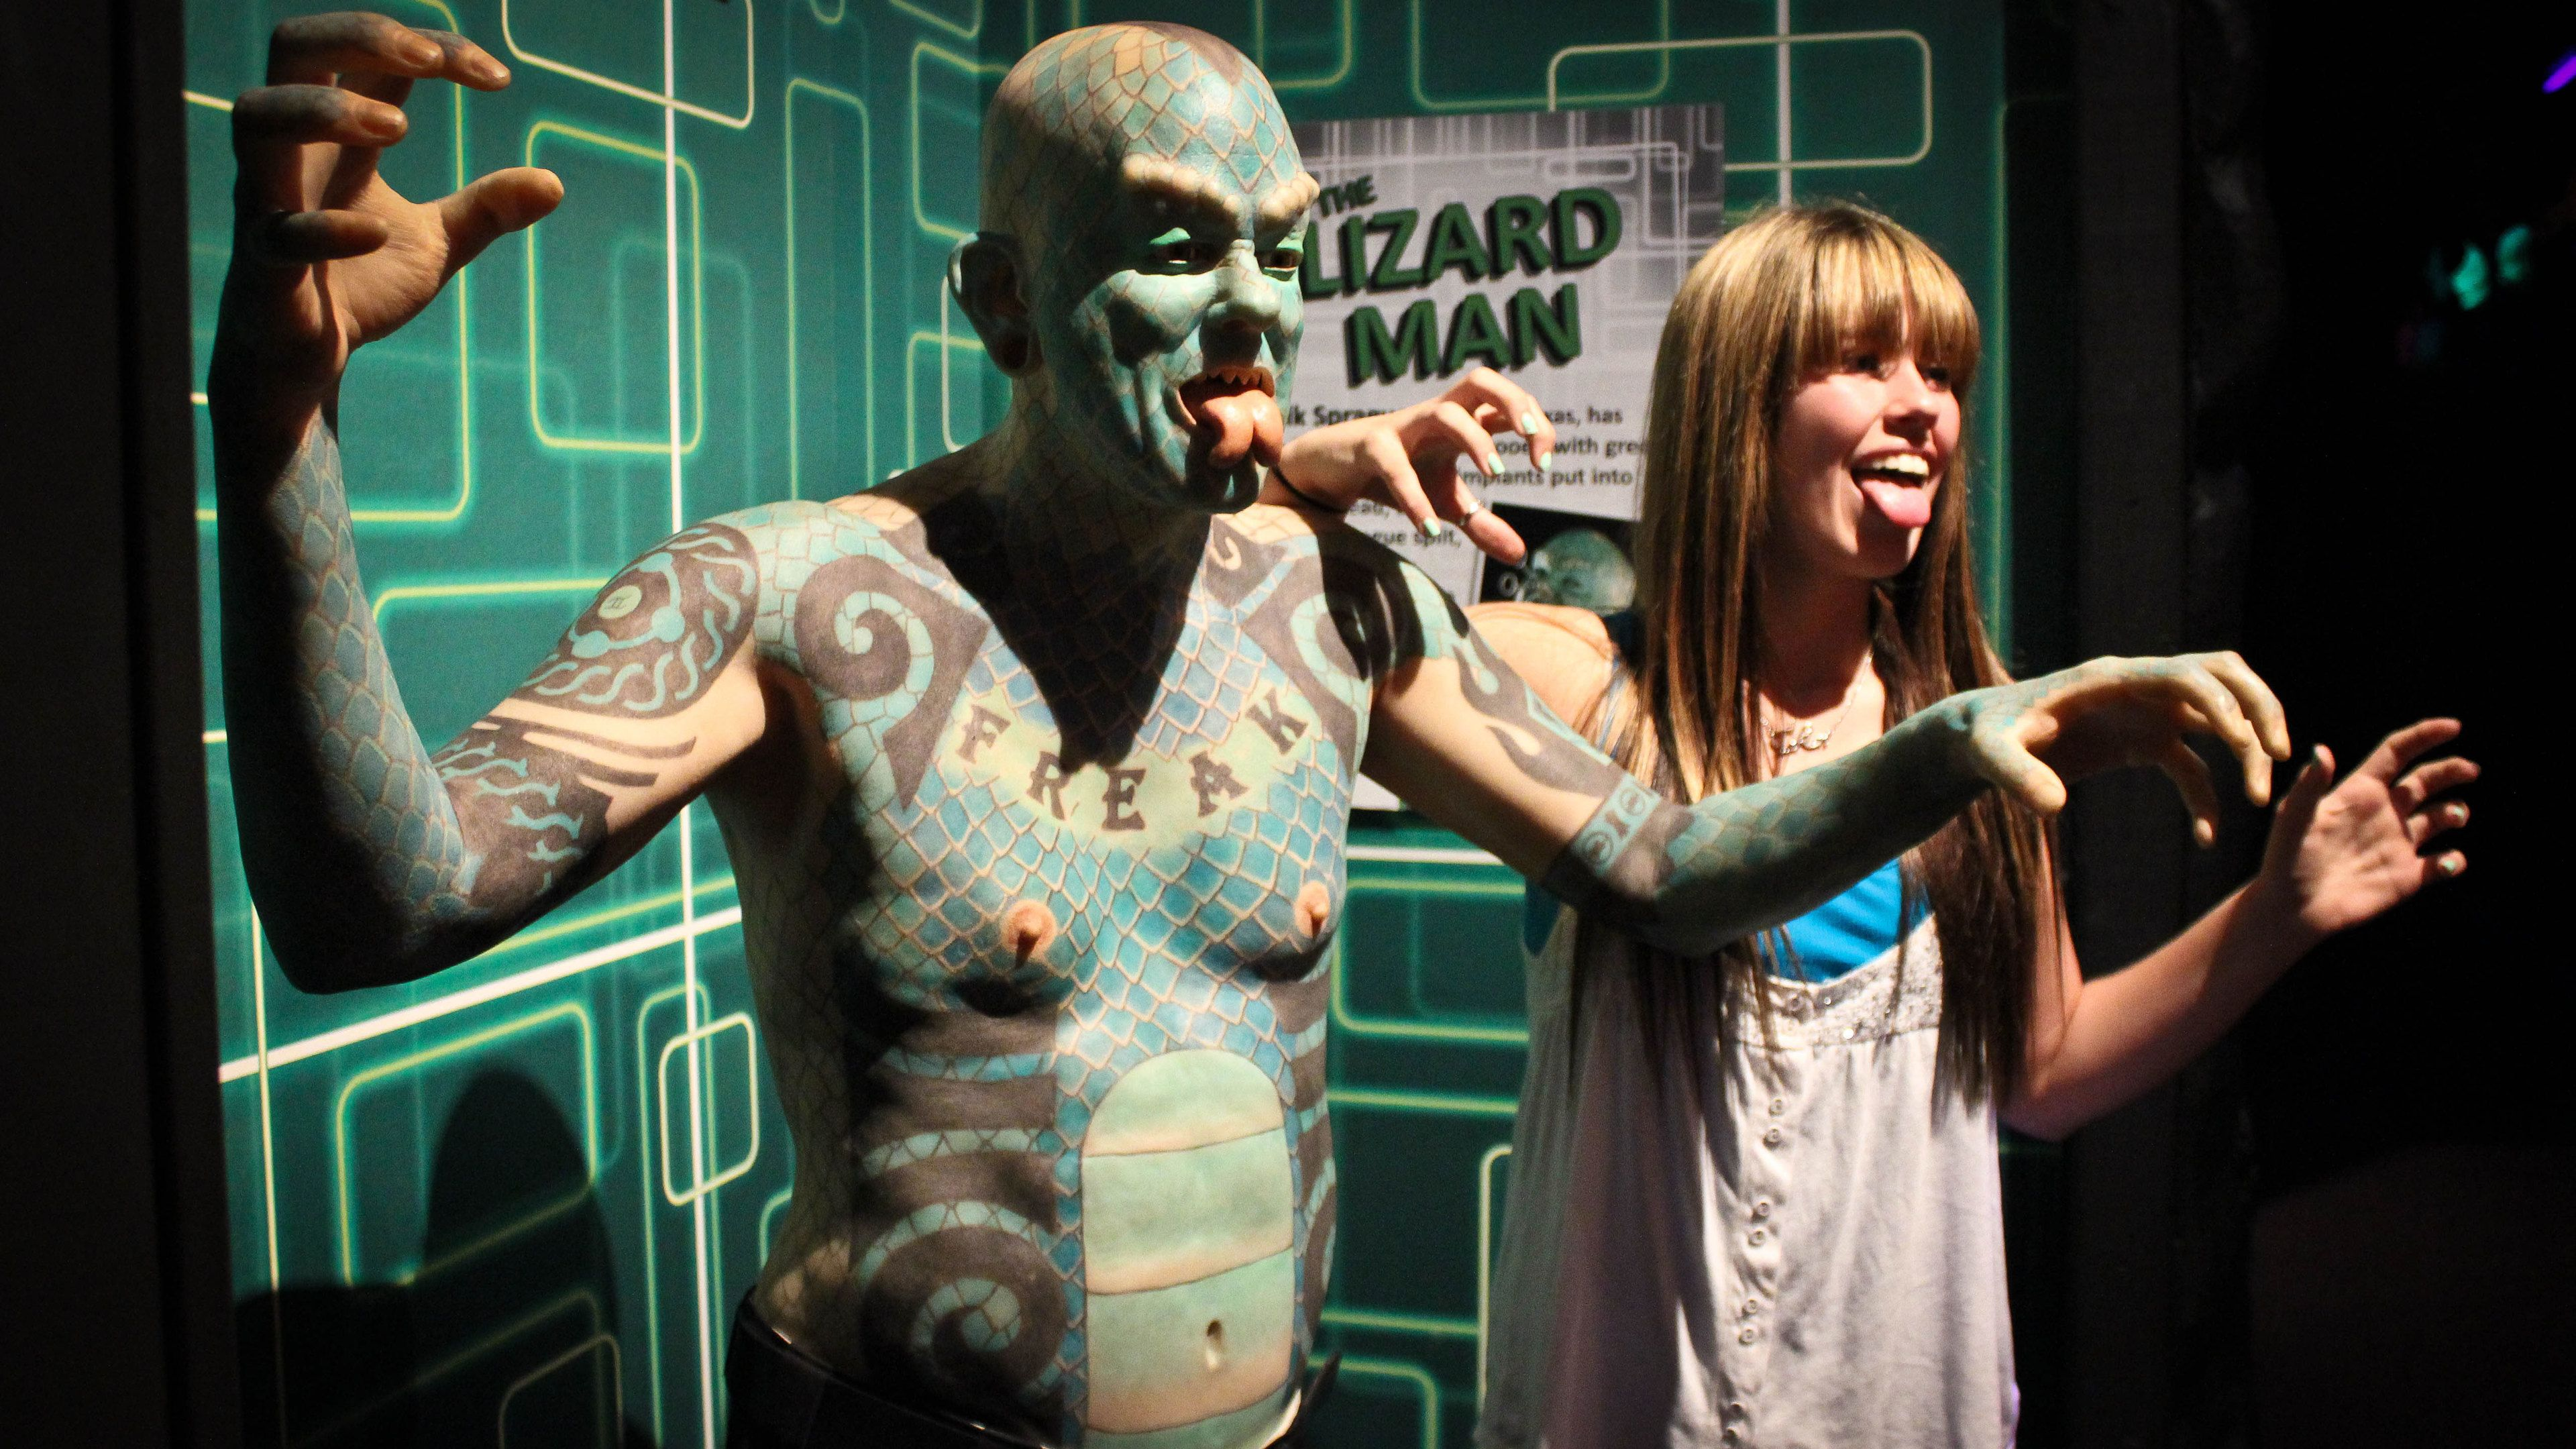 The Lizard Man exhibit with girl in Orlando.